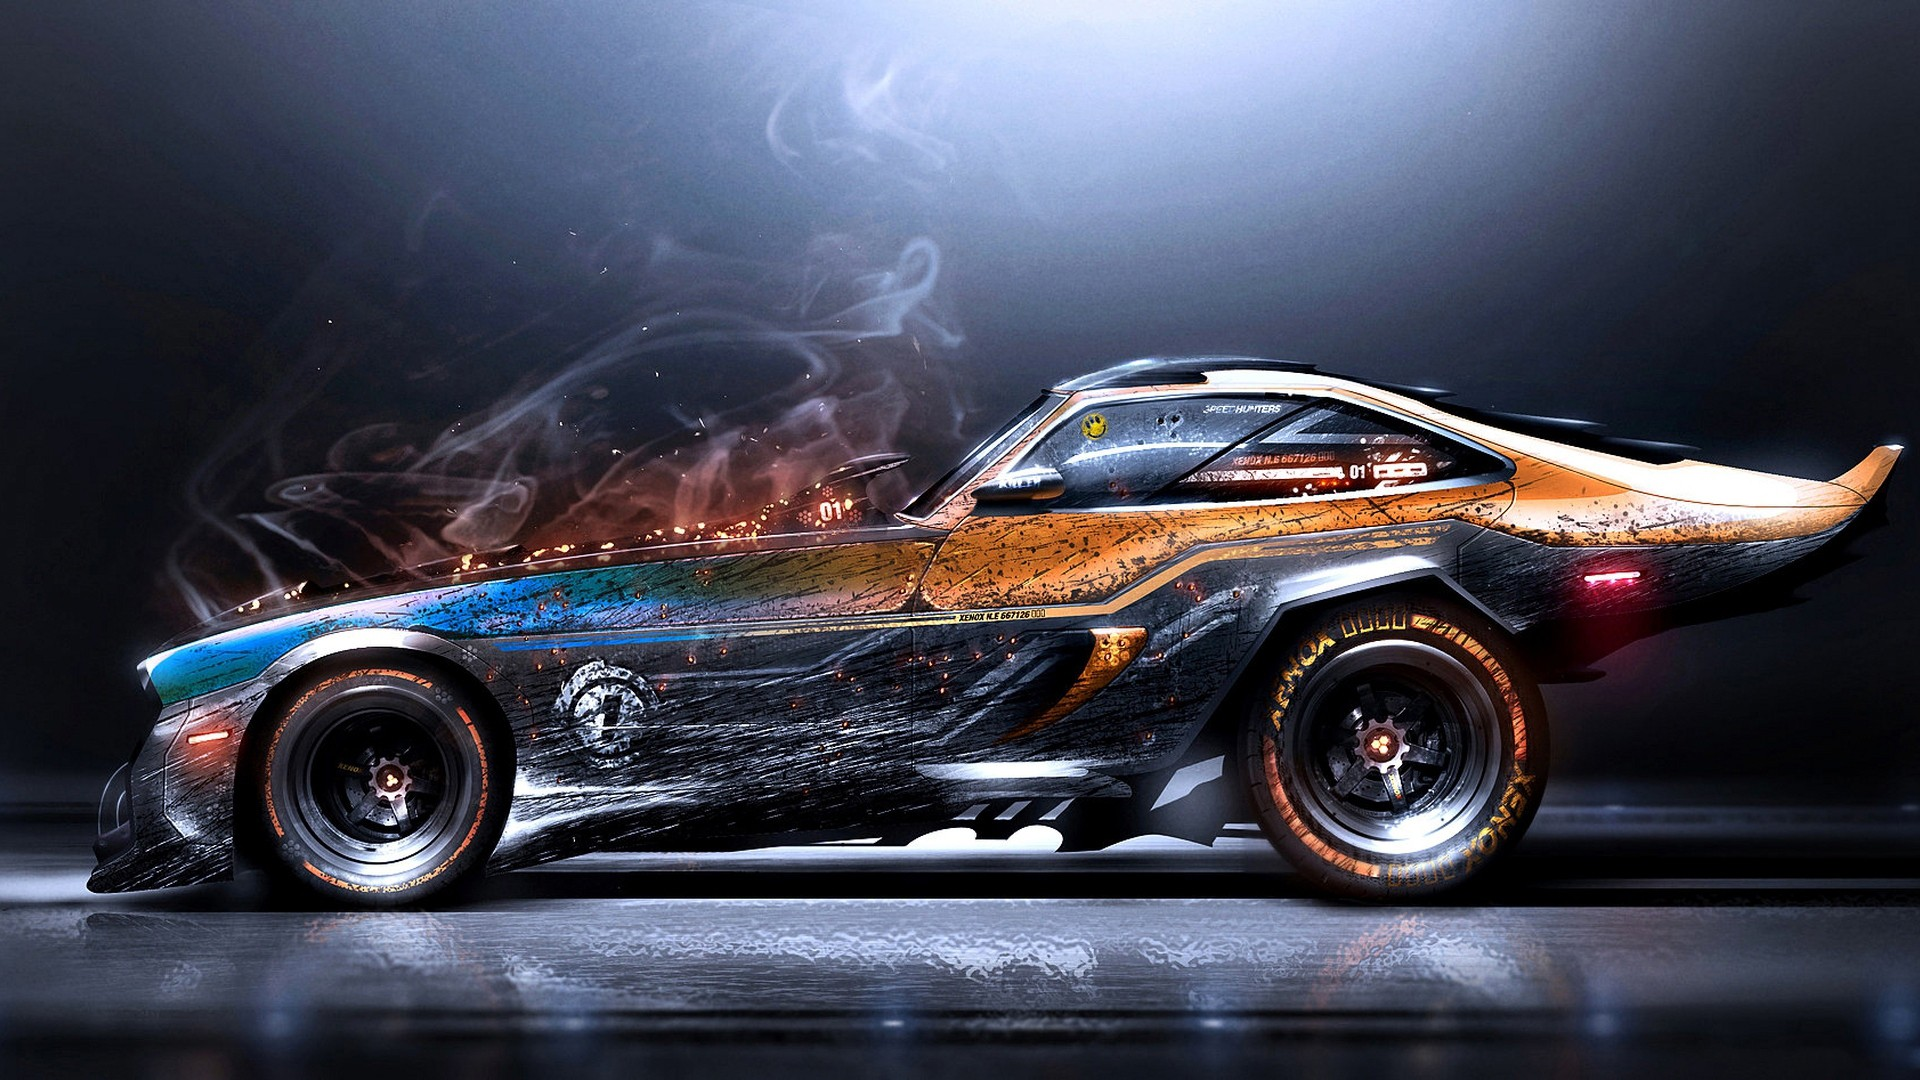 Super Car 5760x1080 Wallpaper Artwork Digital Art Car Smoke Super Car Wallpapers Hd